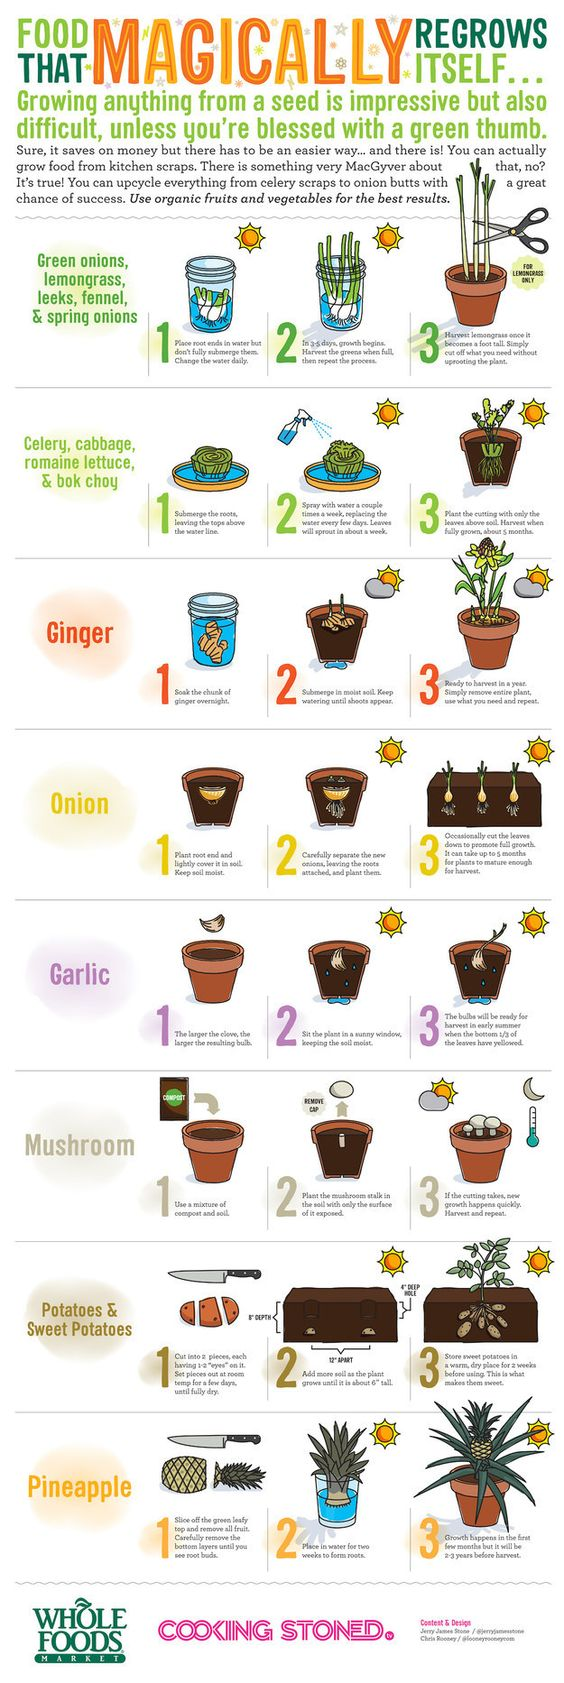 Familiarize yourself with plants that magically regrow themselves. | 21 Gardening Projects To Get You Through Winter: